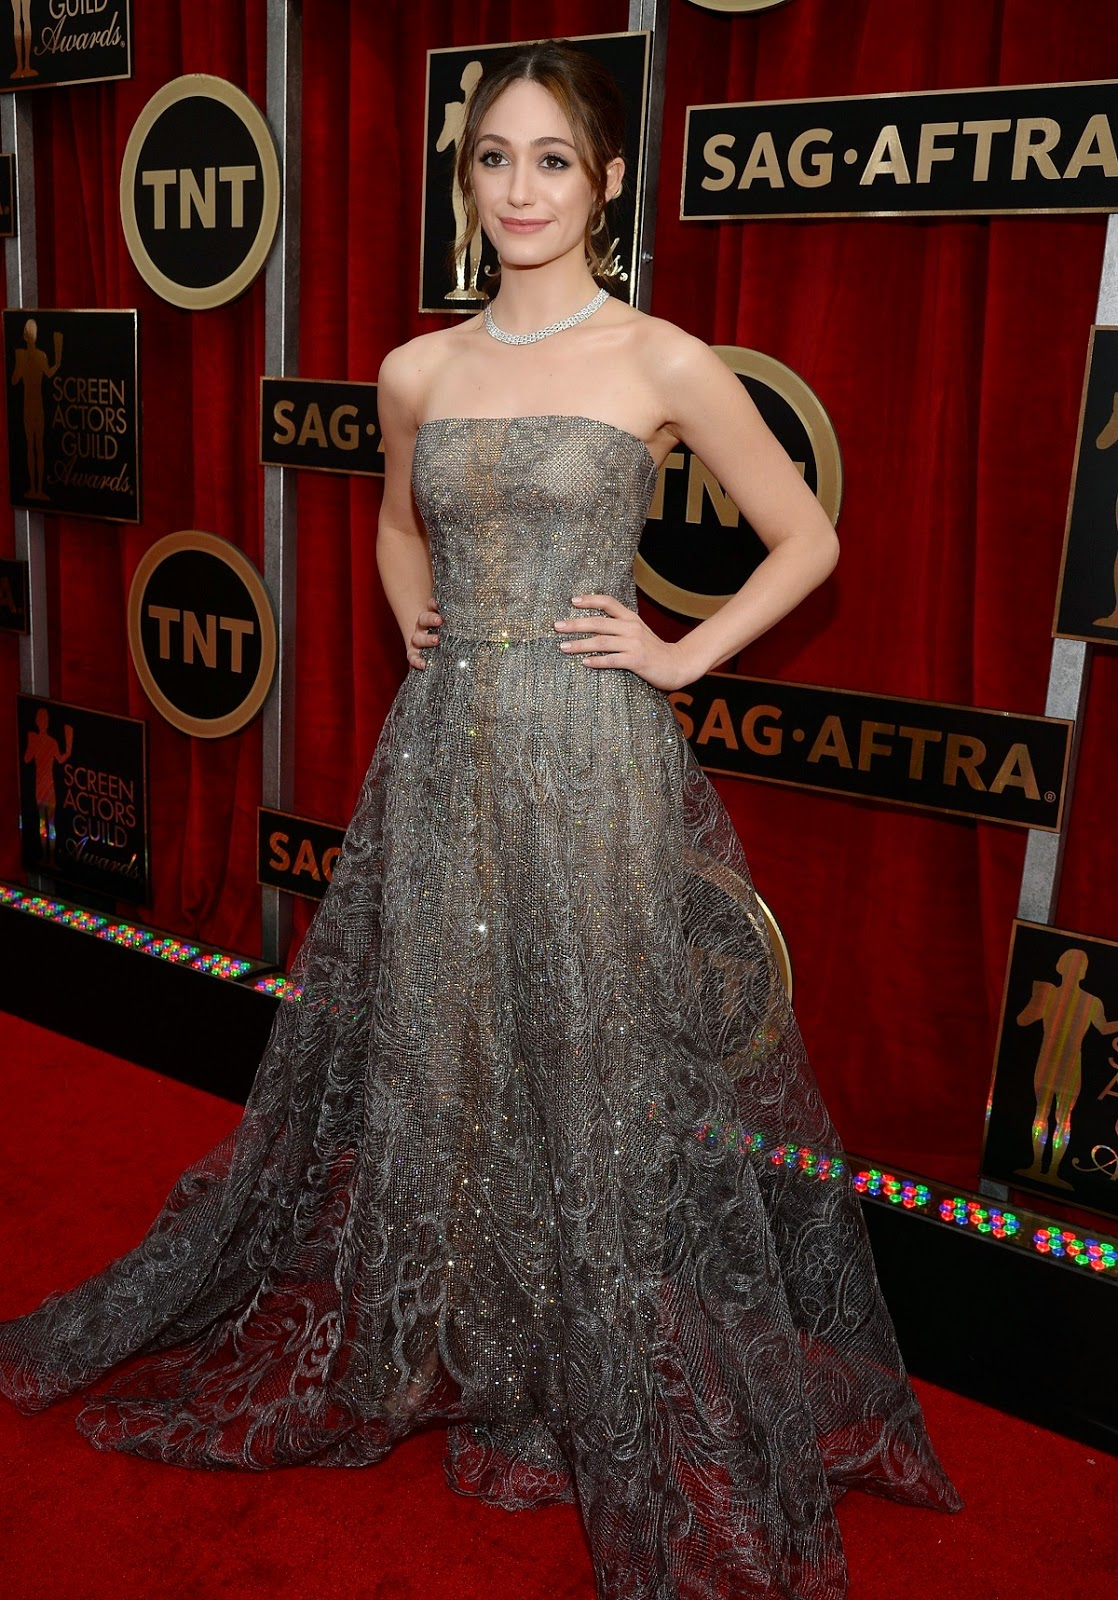 Actress, singer, songwriter: Emmy Rossum at 21st Annual Screen Actors Guild Awards in LA